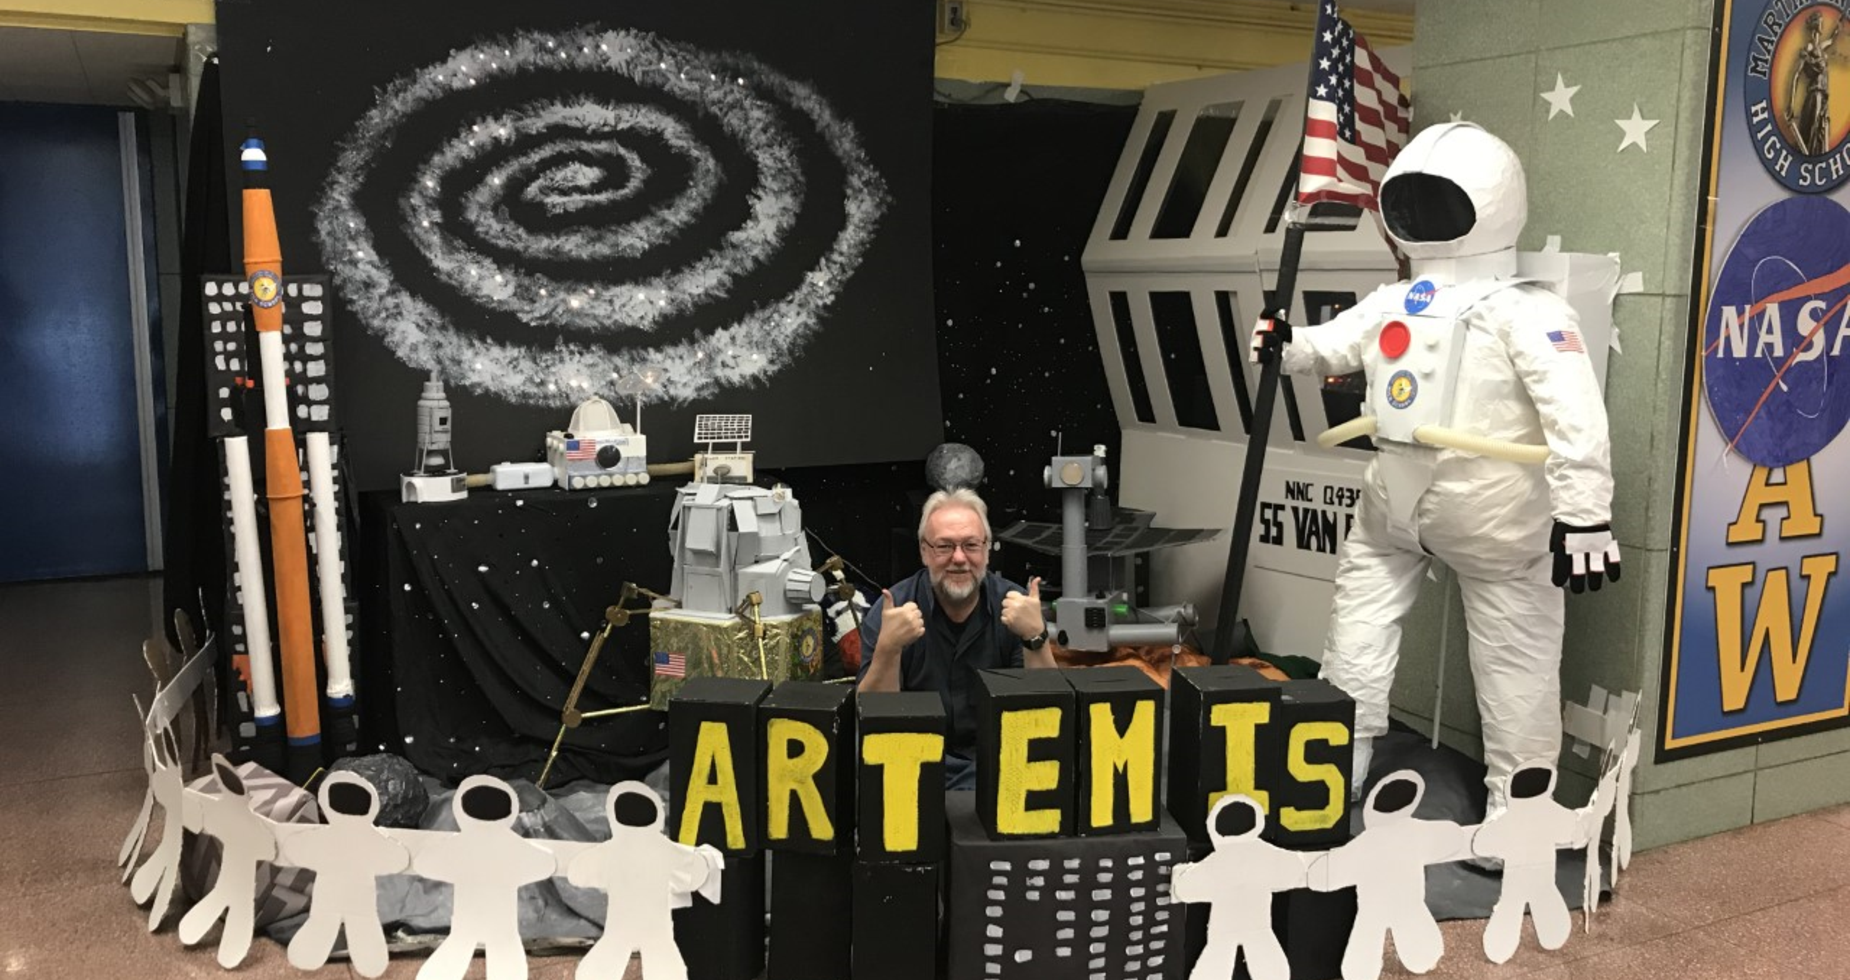 Mr. Cuneen's Art Club Amazing Space Creations. Thank you Mr. Cuneen and the Art Club!.